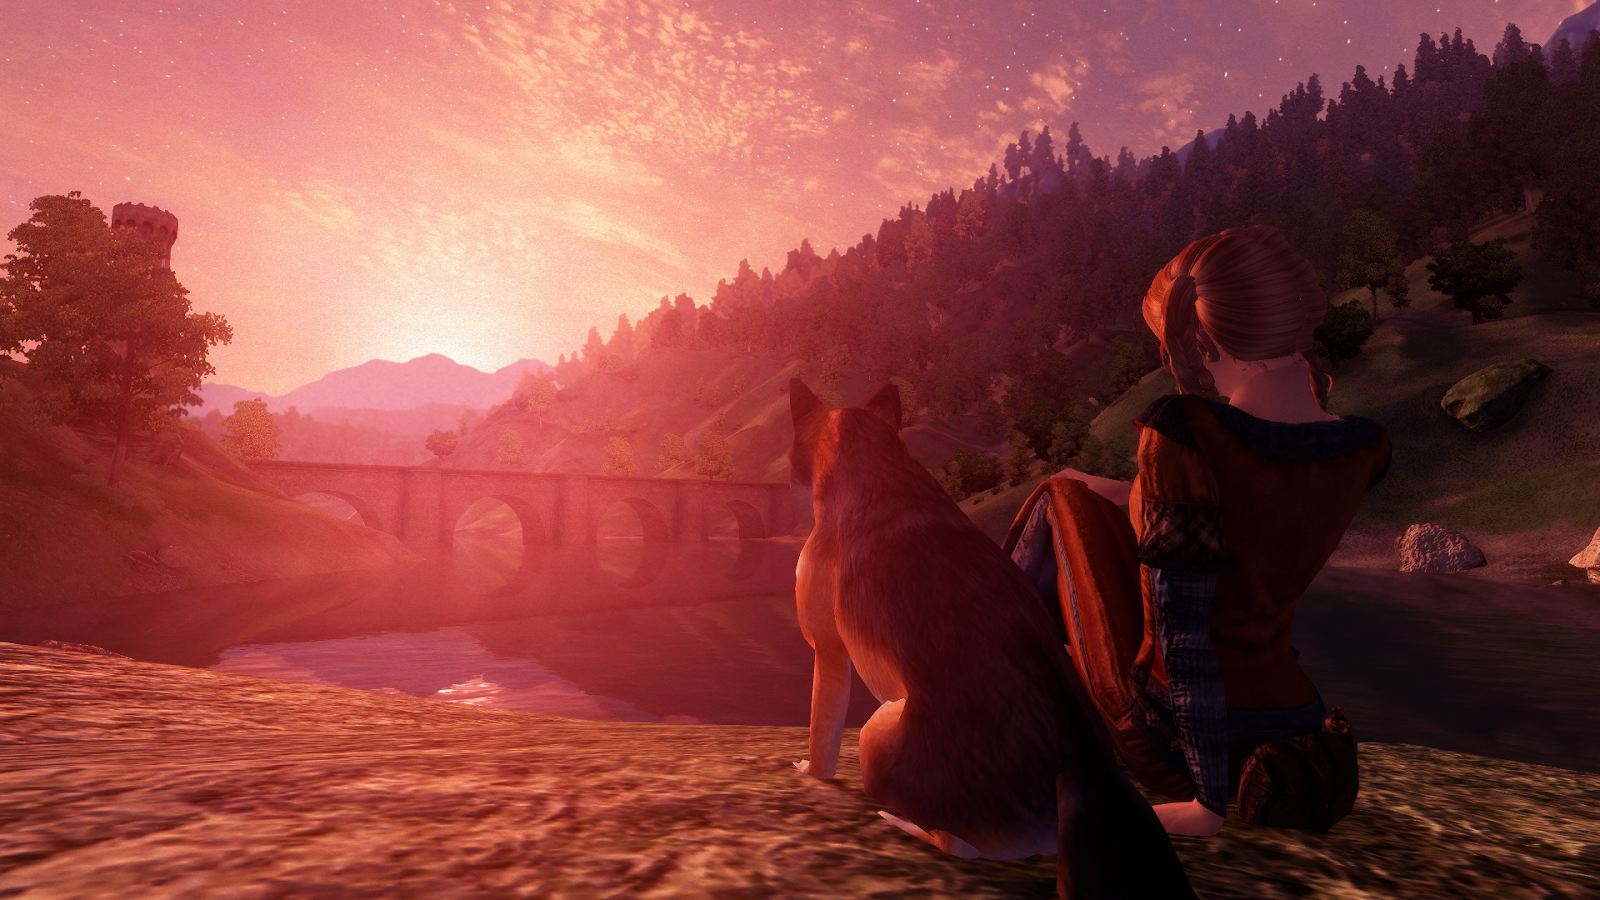 Elli and her fox Rusty watching the sunset.